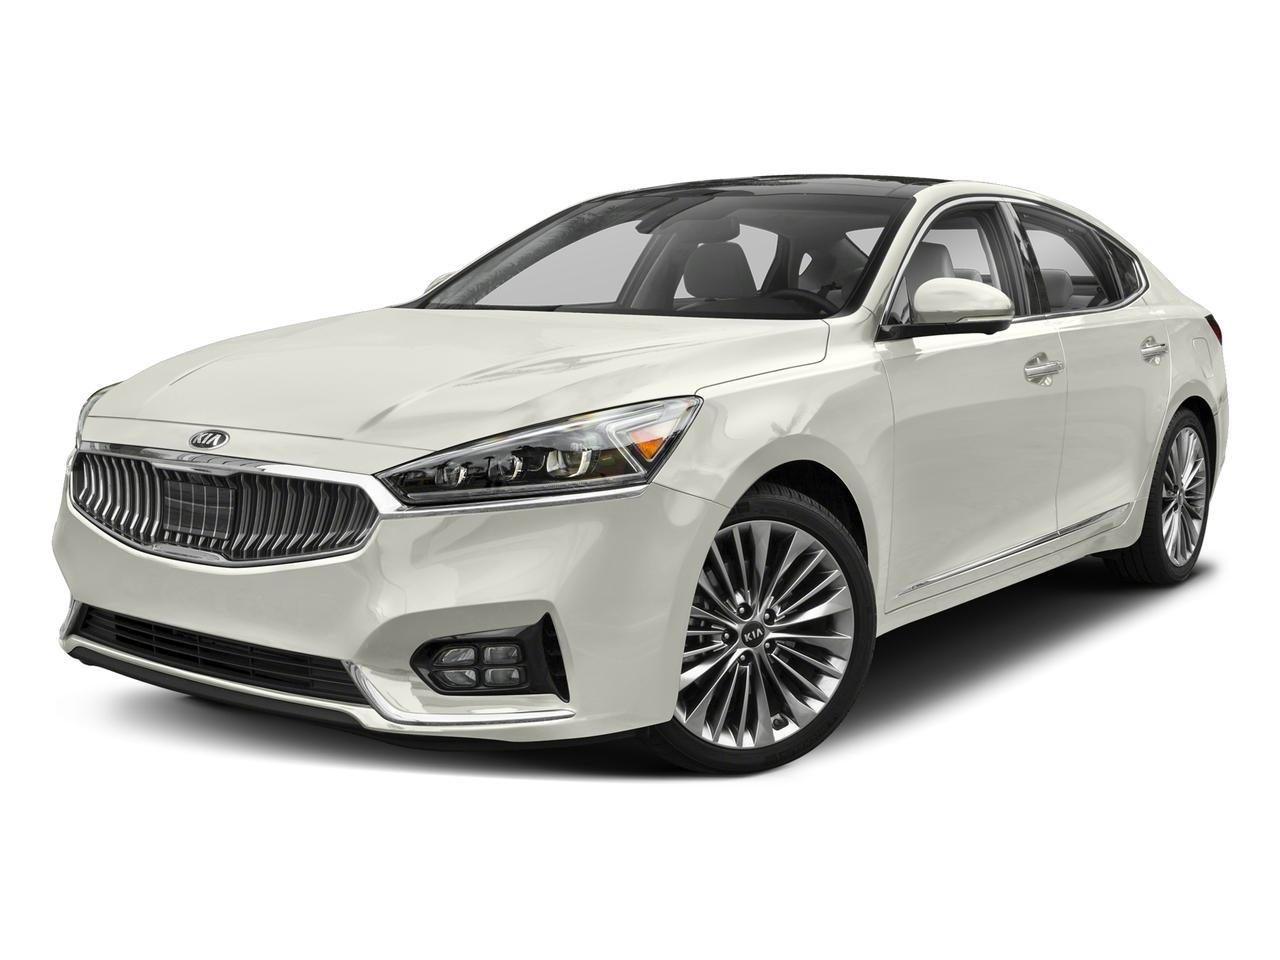 2017 Kia Cadenza Vehicle Photo in Salem, VA 24153